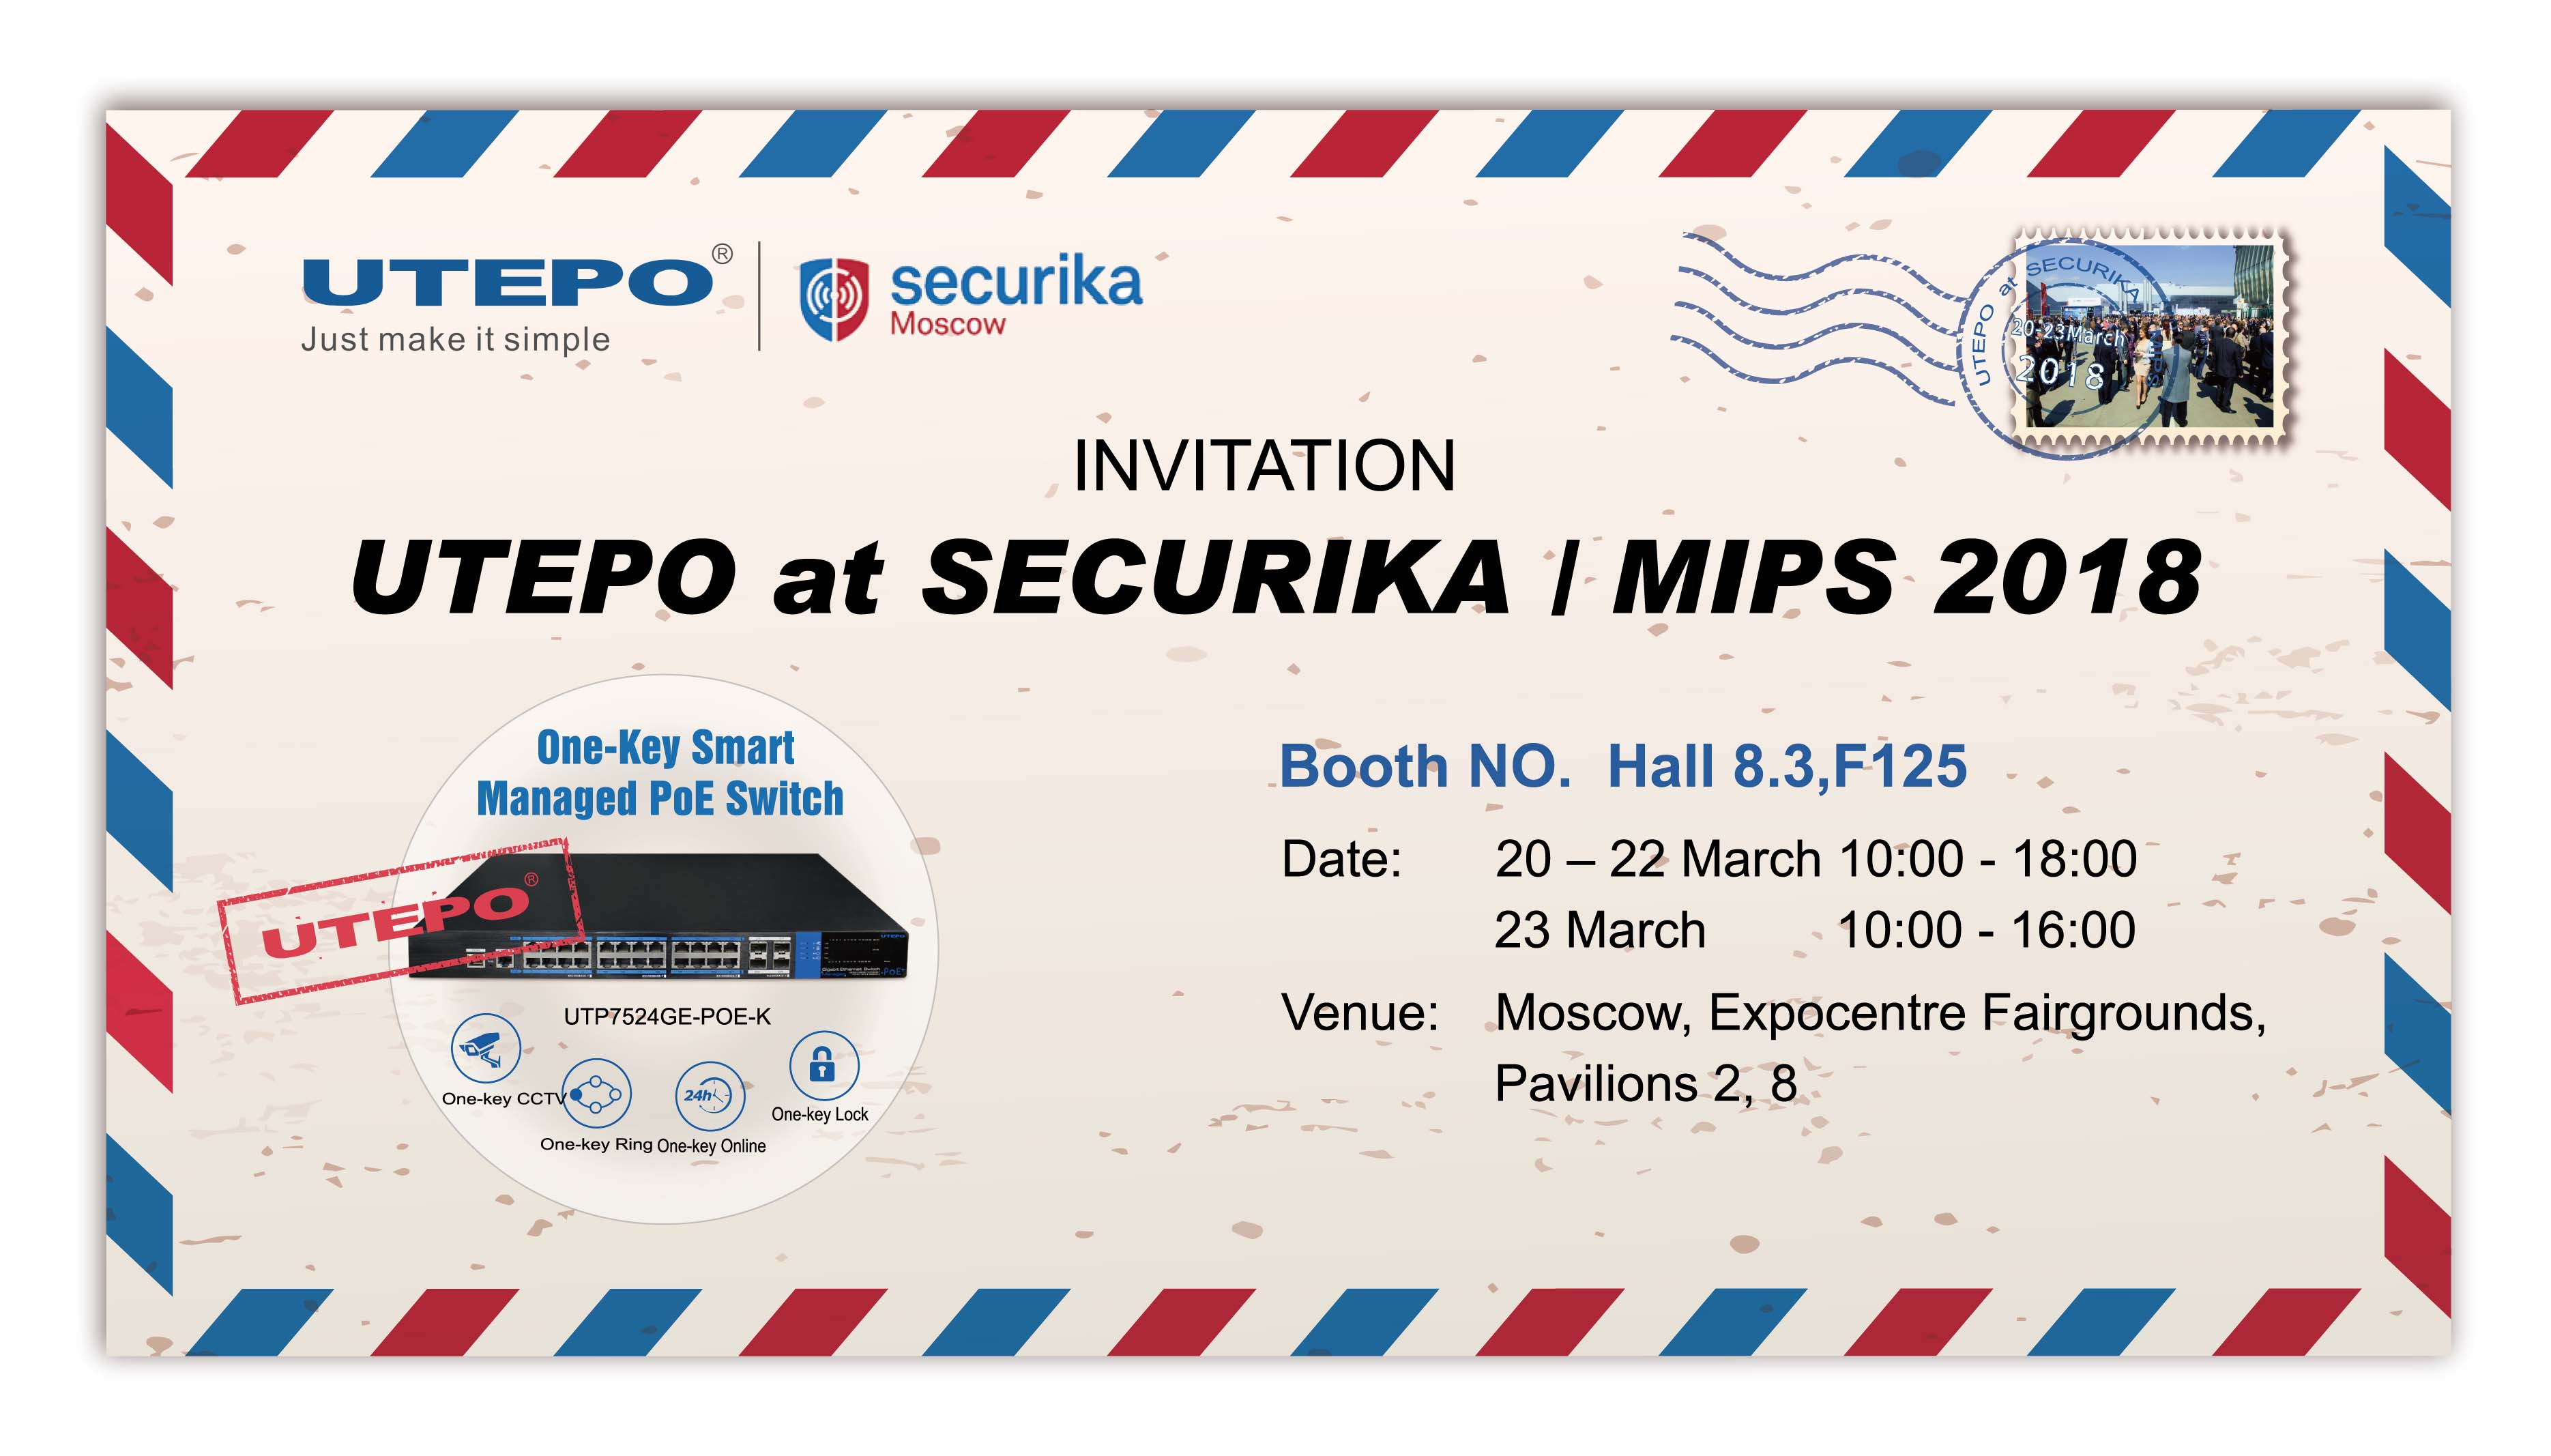 INVITATION-UTEPO will attend SECURIKA / MIPS 2018